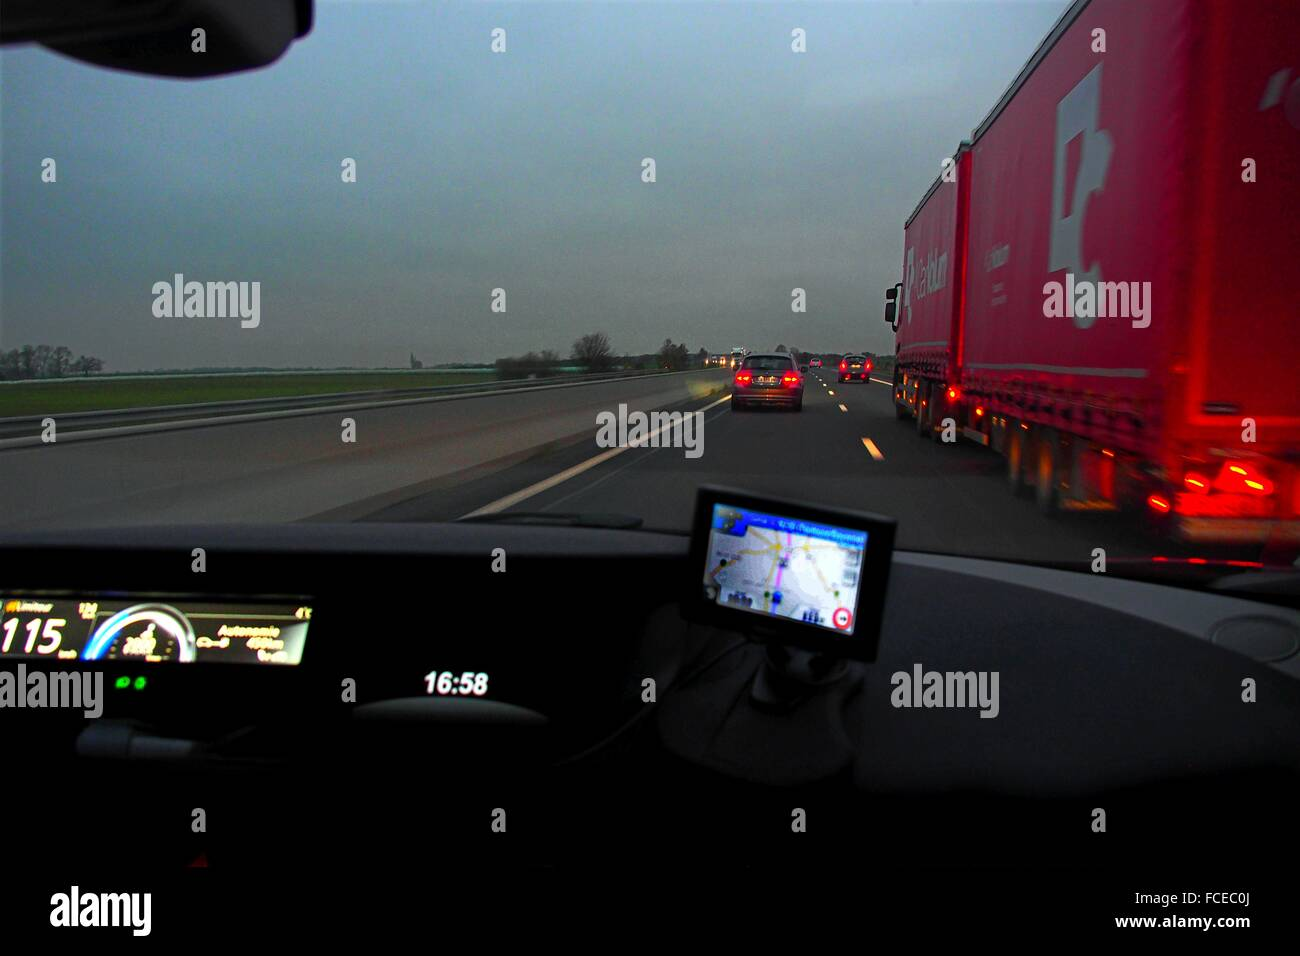 Driving on the AI near Roye, Picardy, France - Stock Image